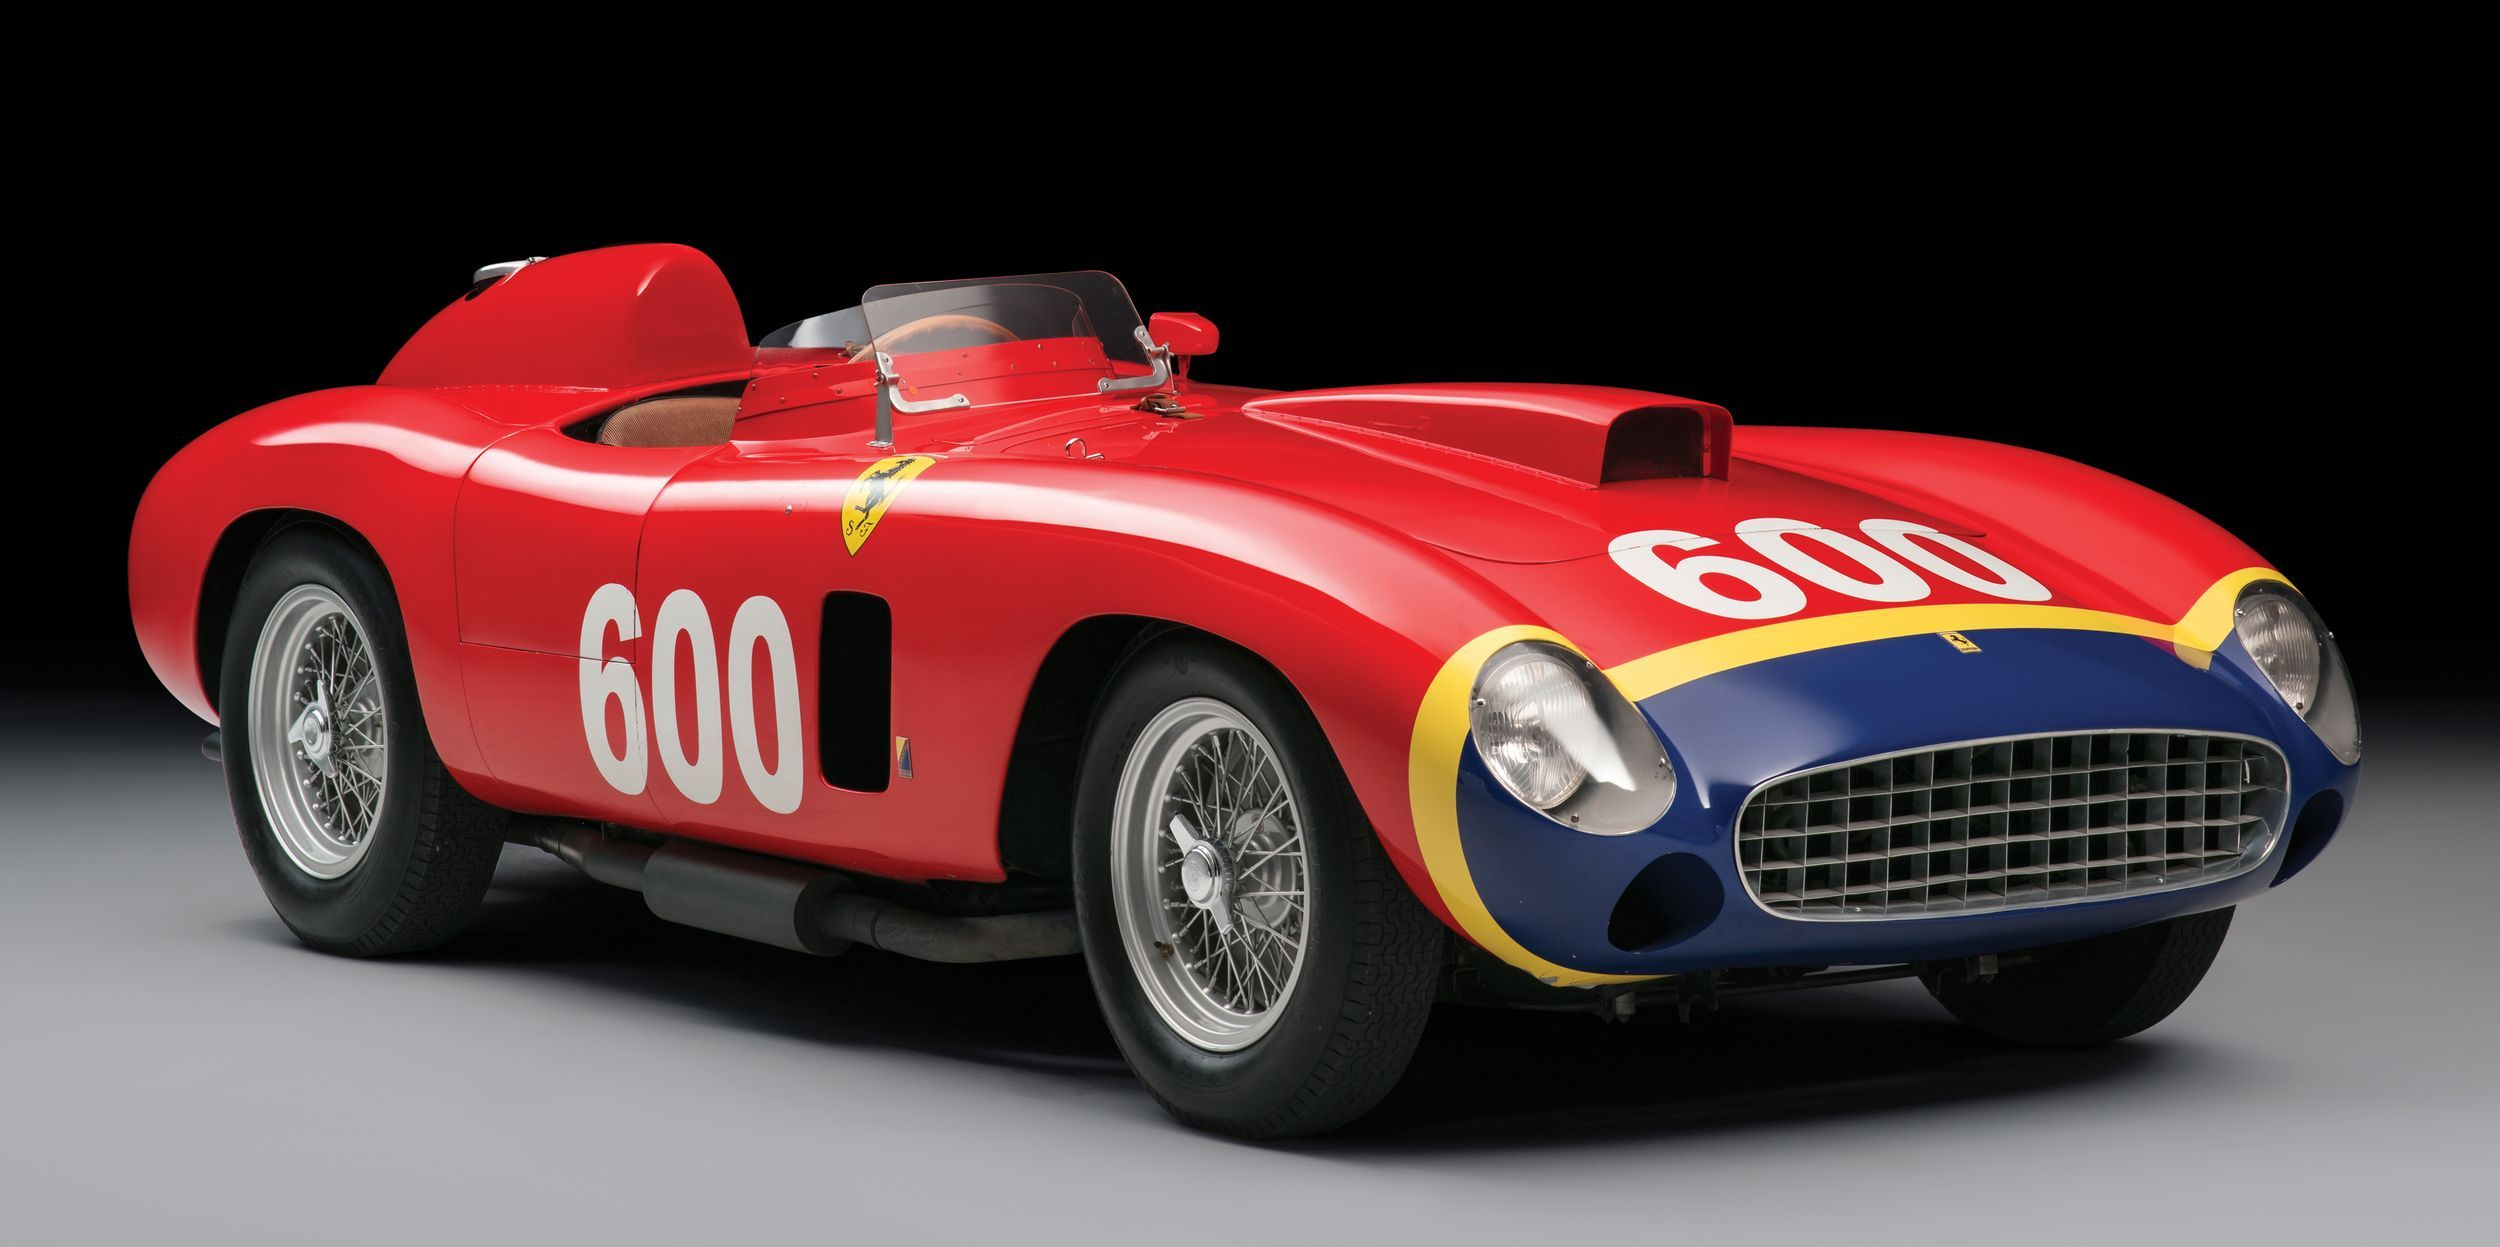 1956 Ferrari 290 MM Maintenance/restoration of old/vintage vehicles: the material for new cogs/casters/gears/pads could be cast polyamide which I (Cast polyamide) can produce. My contact: tatjana.alic@windowslive.com